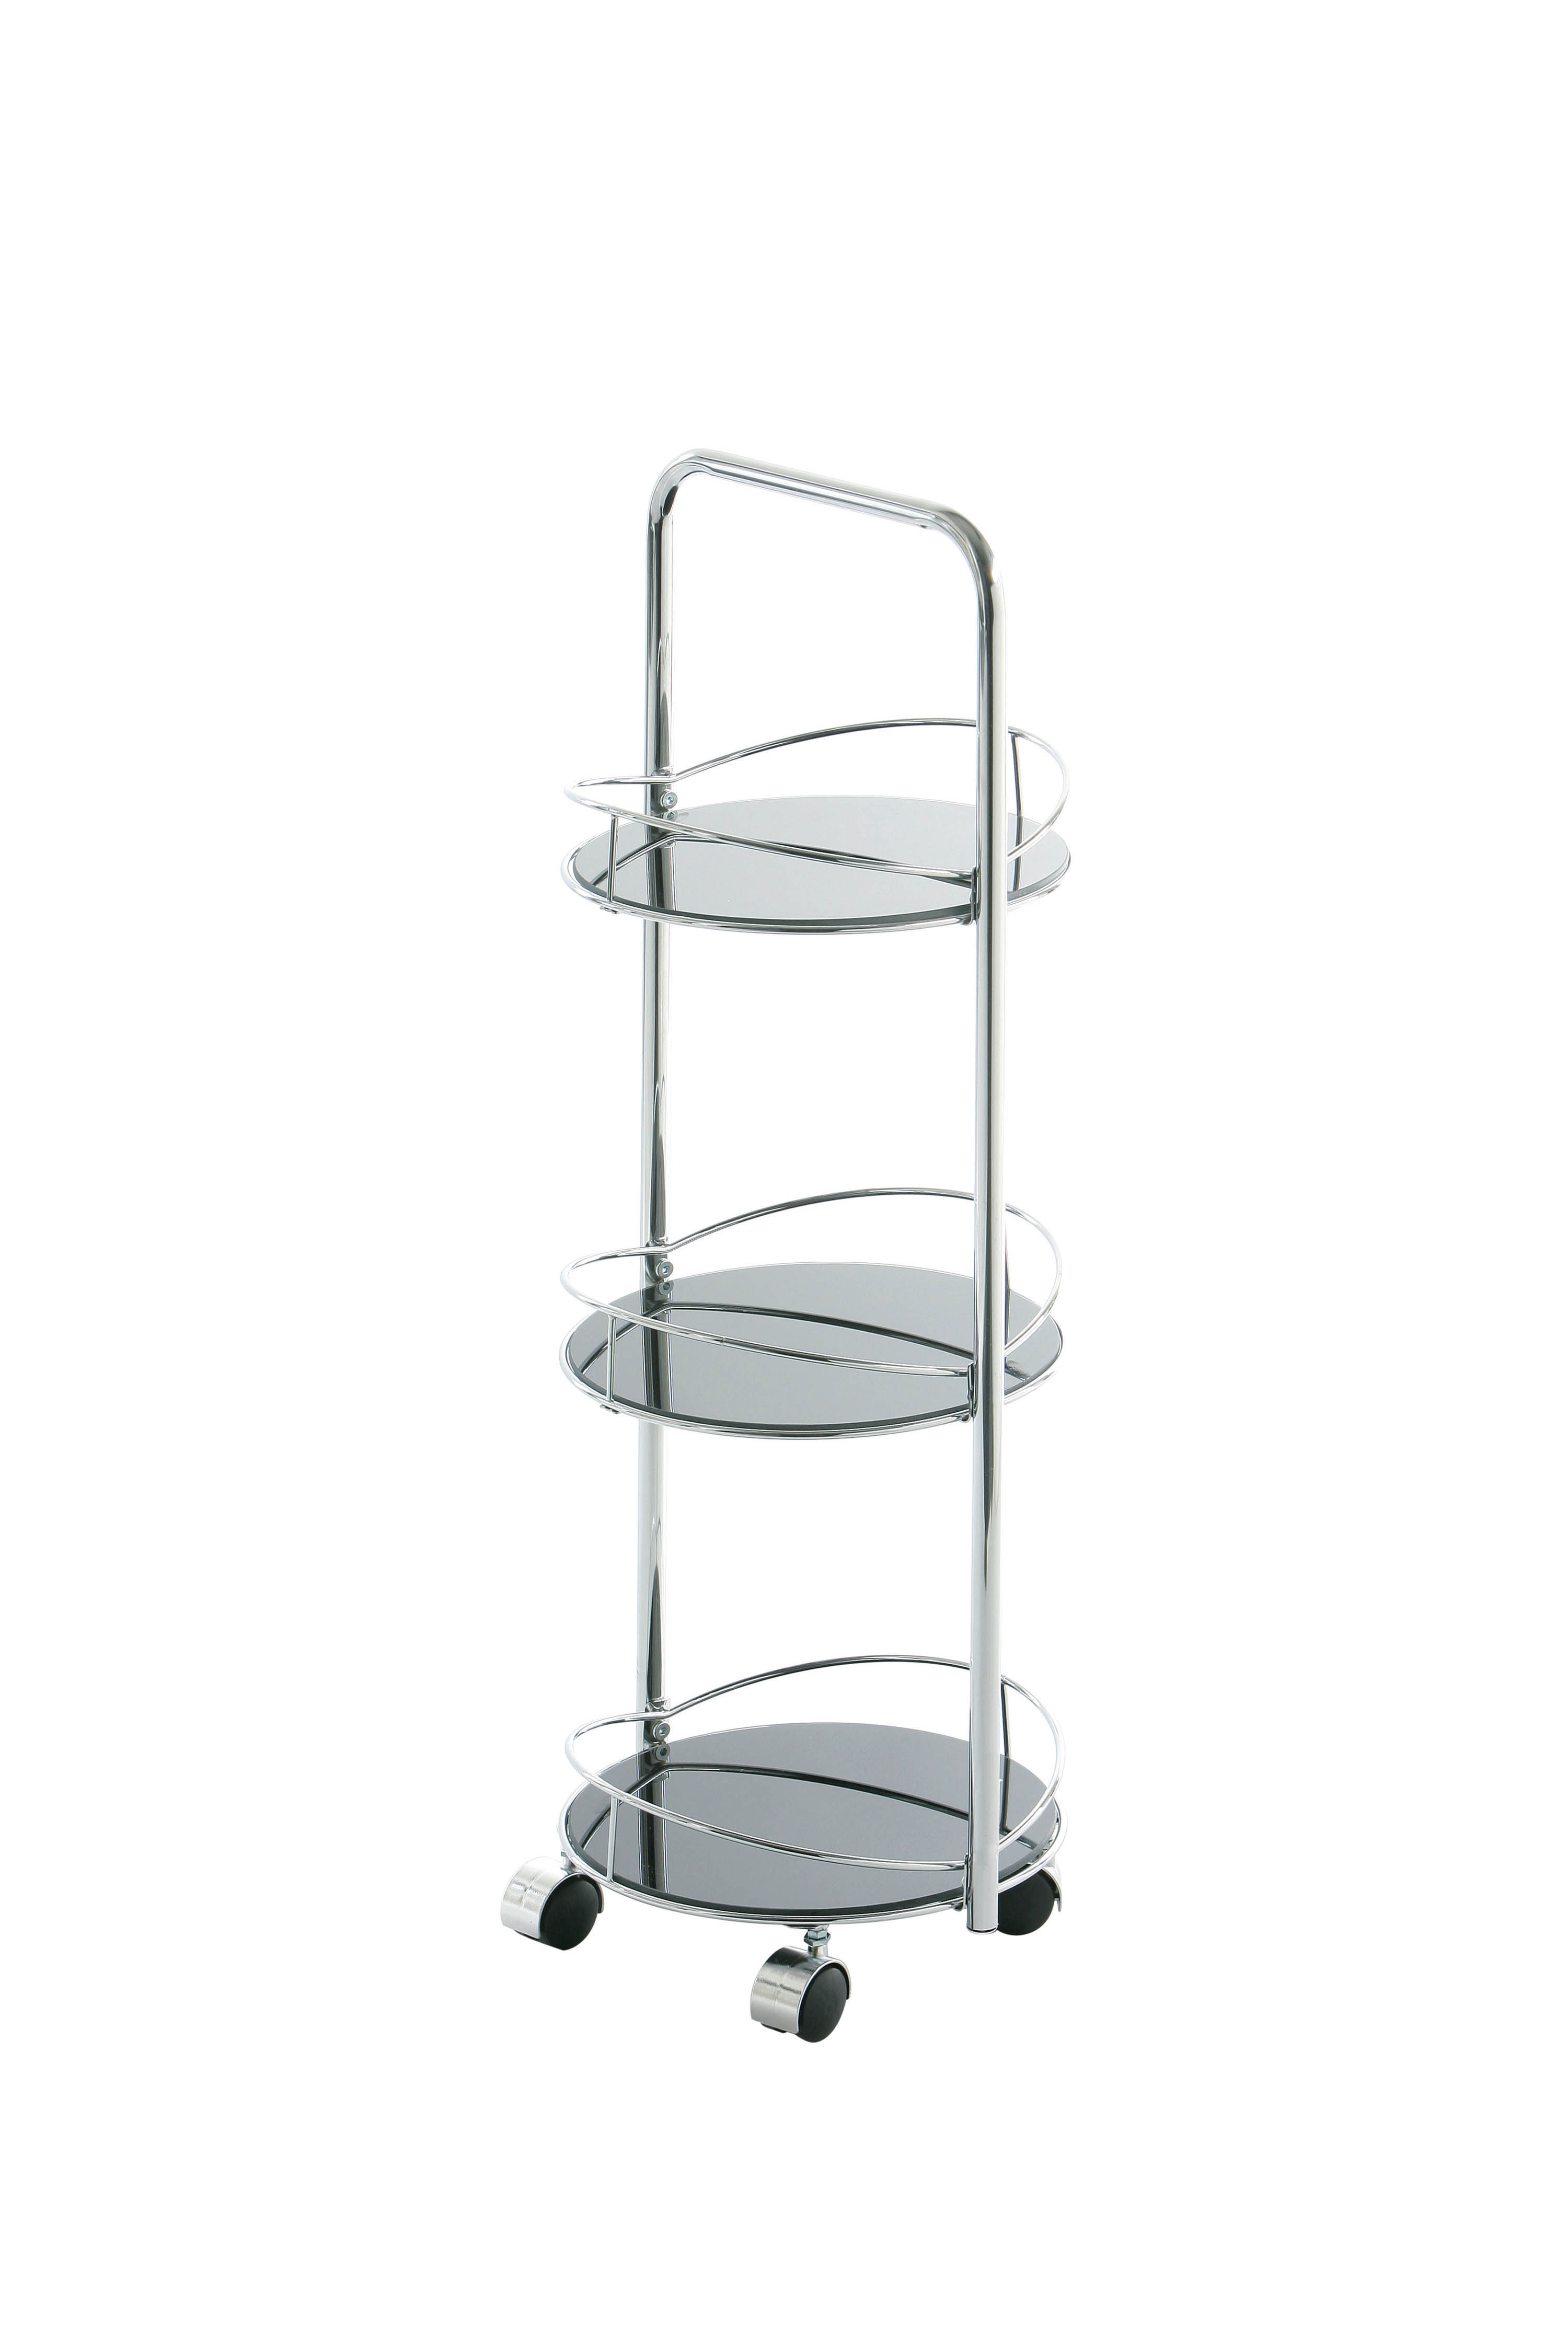 Bathroom Trolley, Round Black Glass, 3 Tier